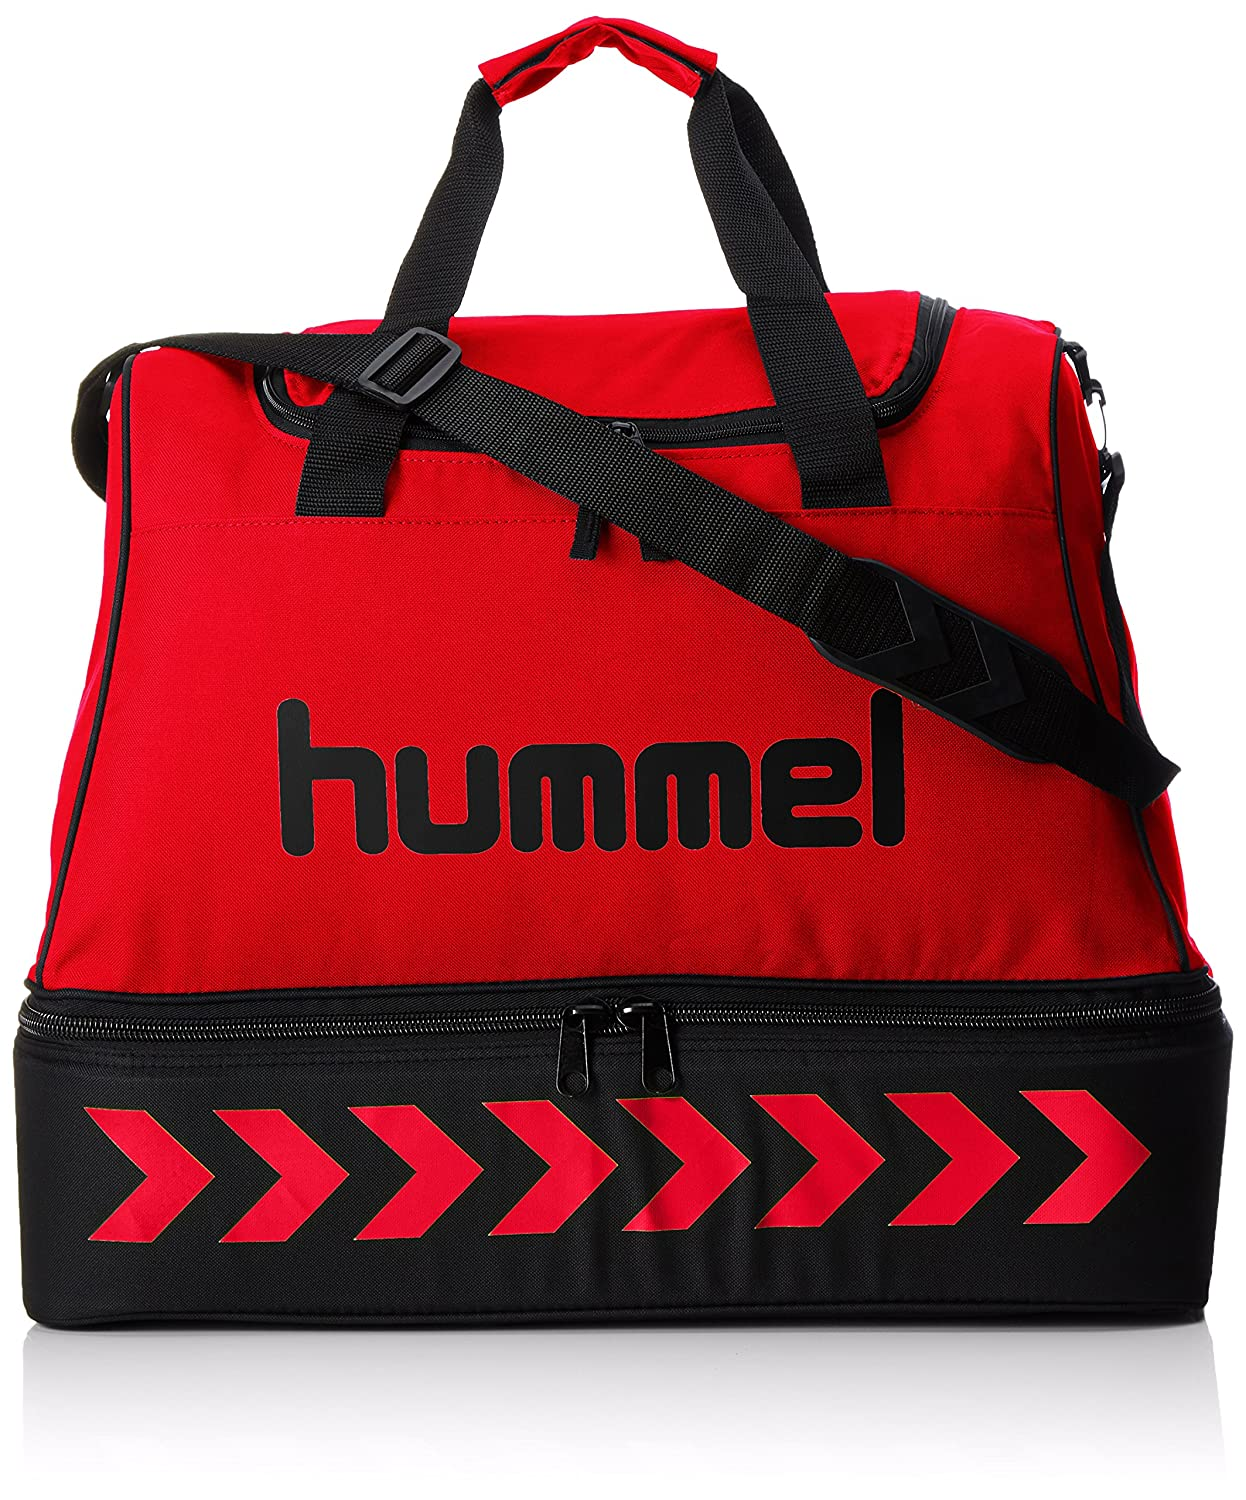 Hummel Tasche Authentic Soccer Bag  Amazon.co.uk  Sports   Outdoors a07df5b71fe5d